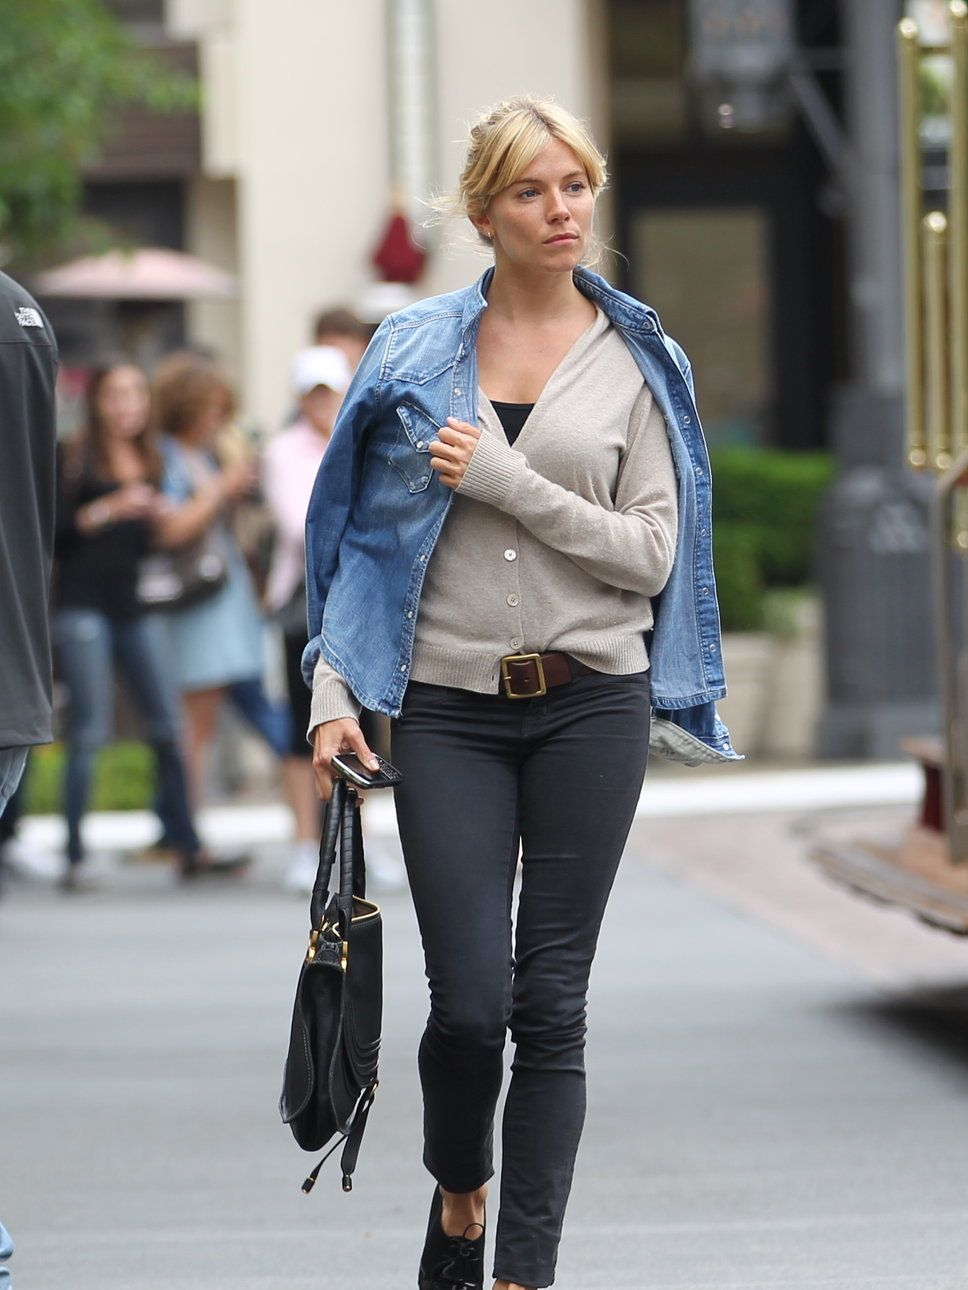 Sienna miller fashionable celebs pinterest sienna miller tomboy style and gray pants Sienna miller fashion style tumblr